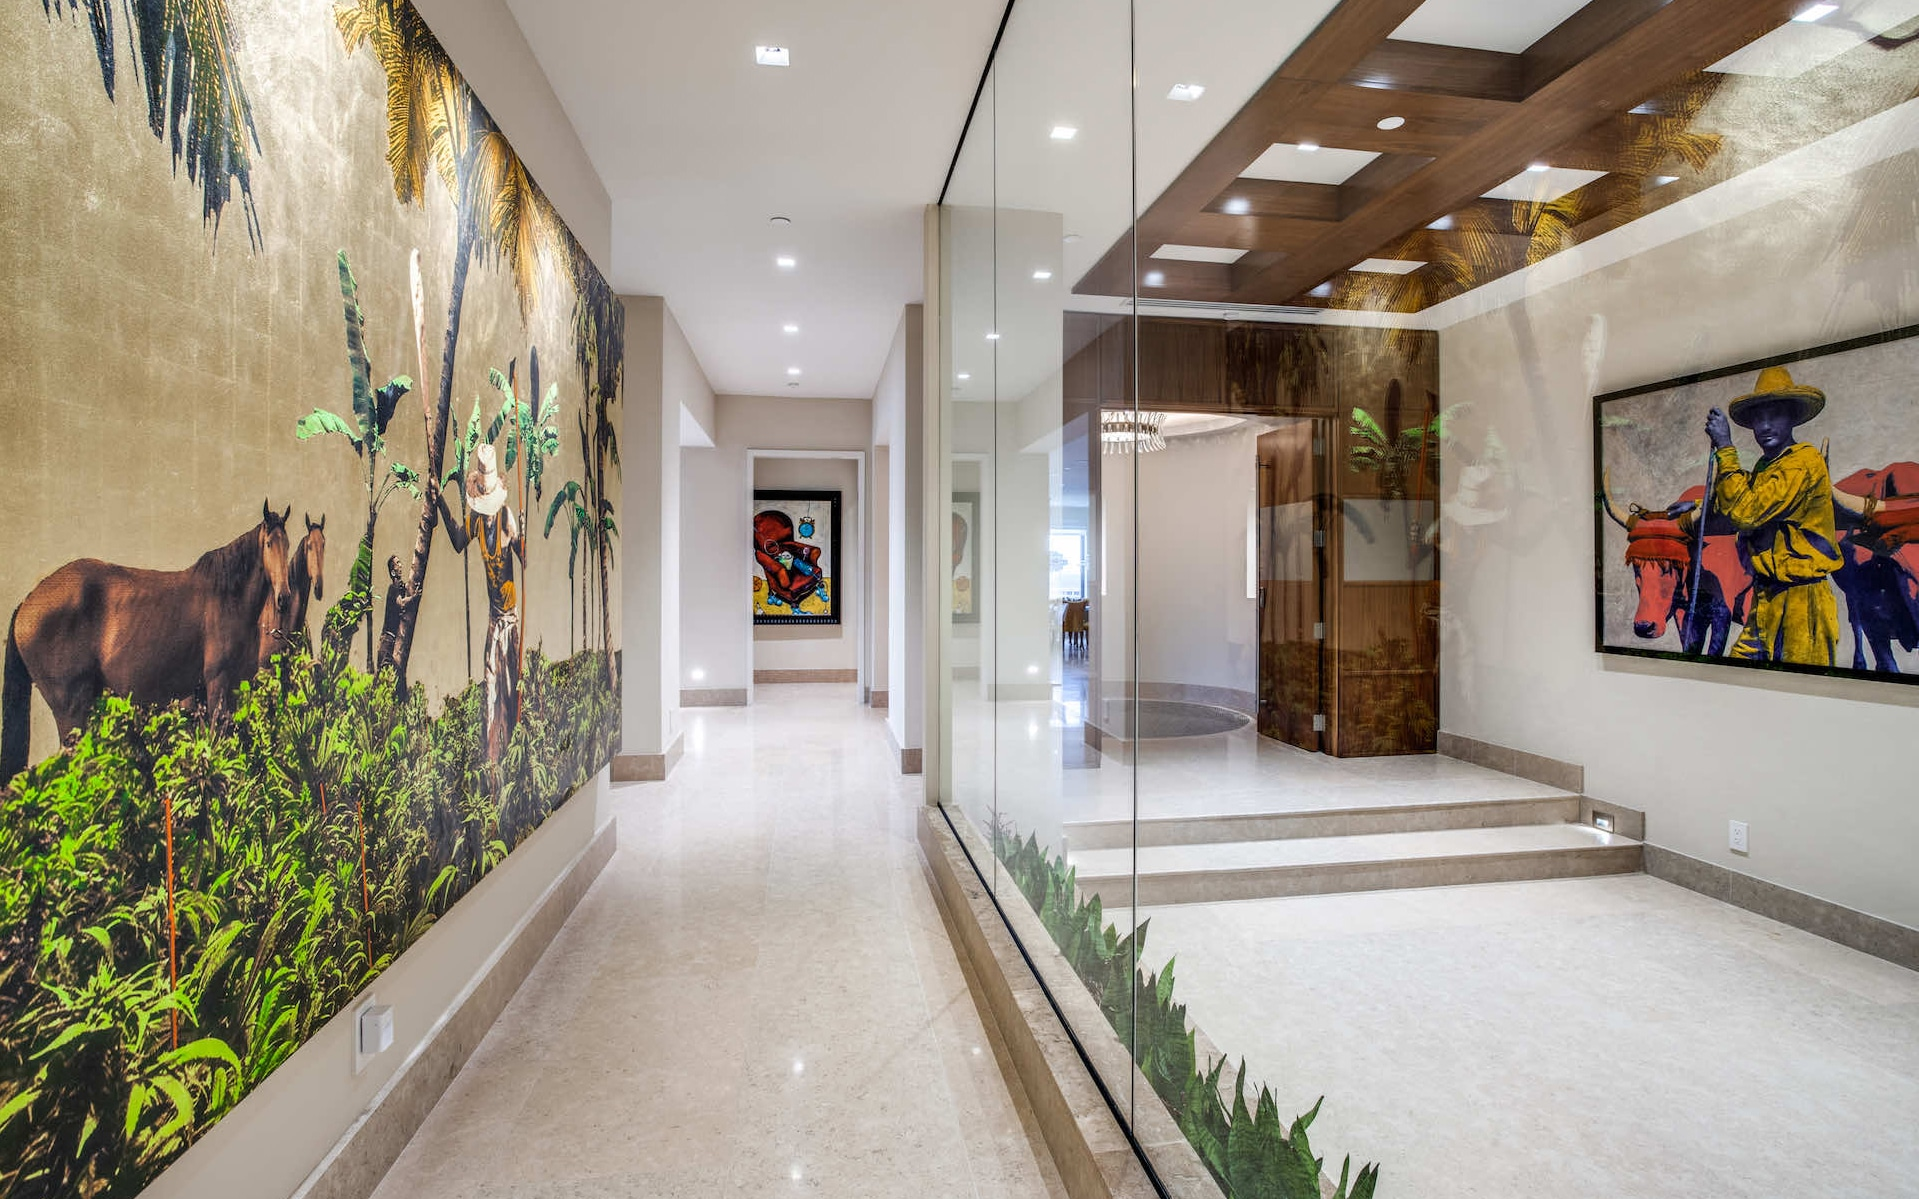 A view down the main hallway with window wall creating an open, airy feeling with the condominium foyer